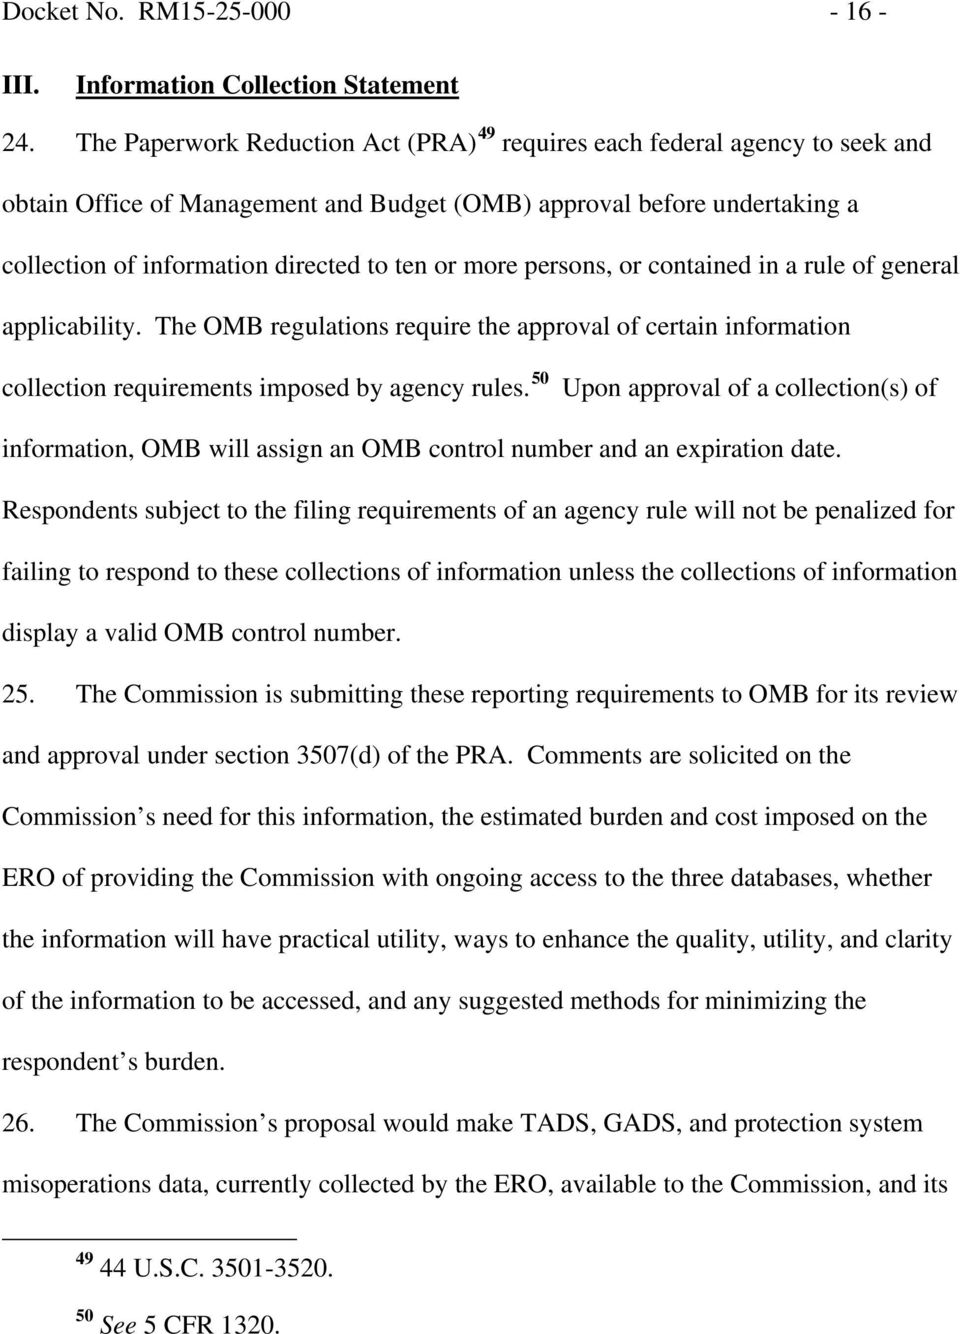 more persons, or contained in a rule of general applicability. The OMB regulations require the approval of certain information collection requirements imposed by agency rules.